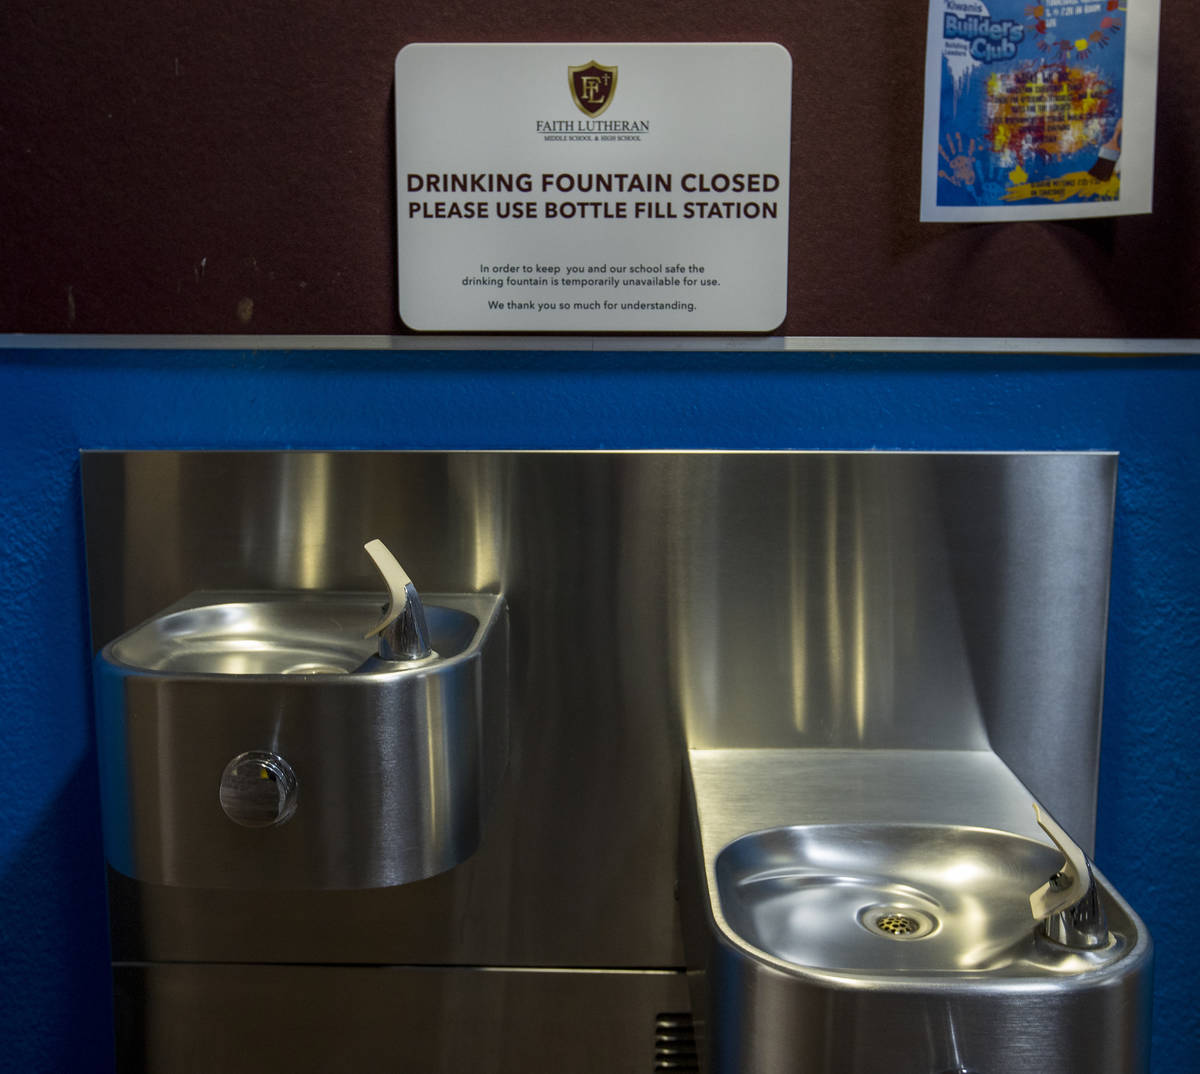 Drinking fountains are closed due to COVID-19 safety measures at Faith Lutheran Middle & Hi ...